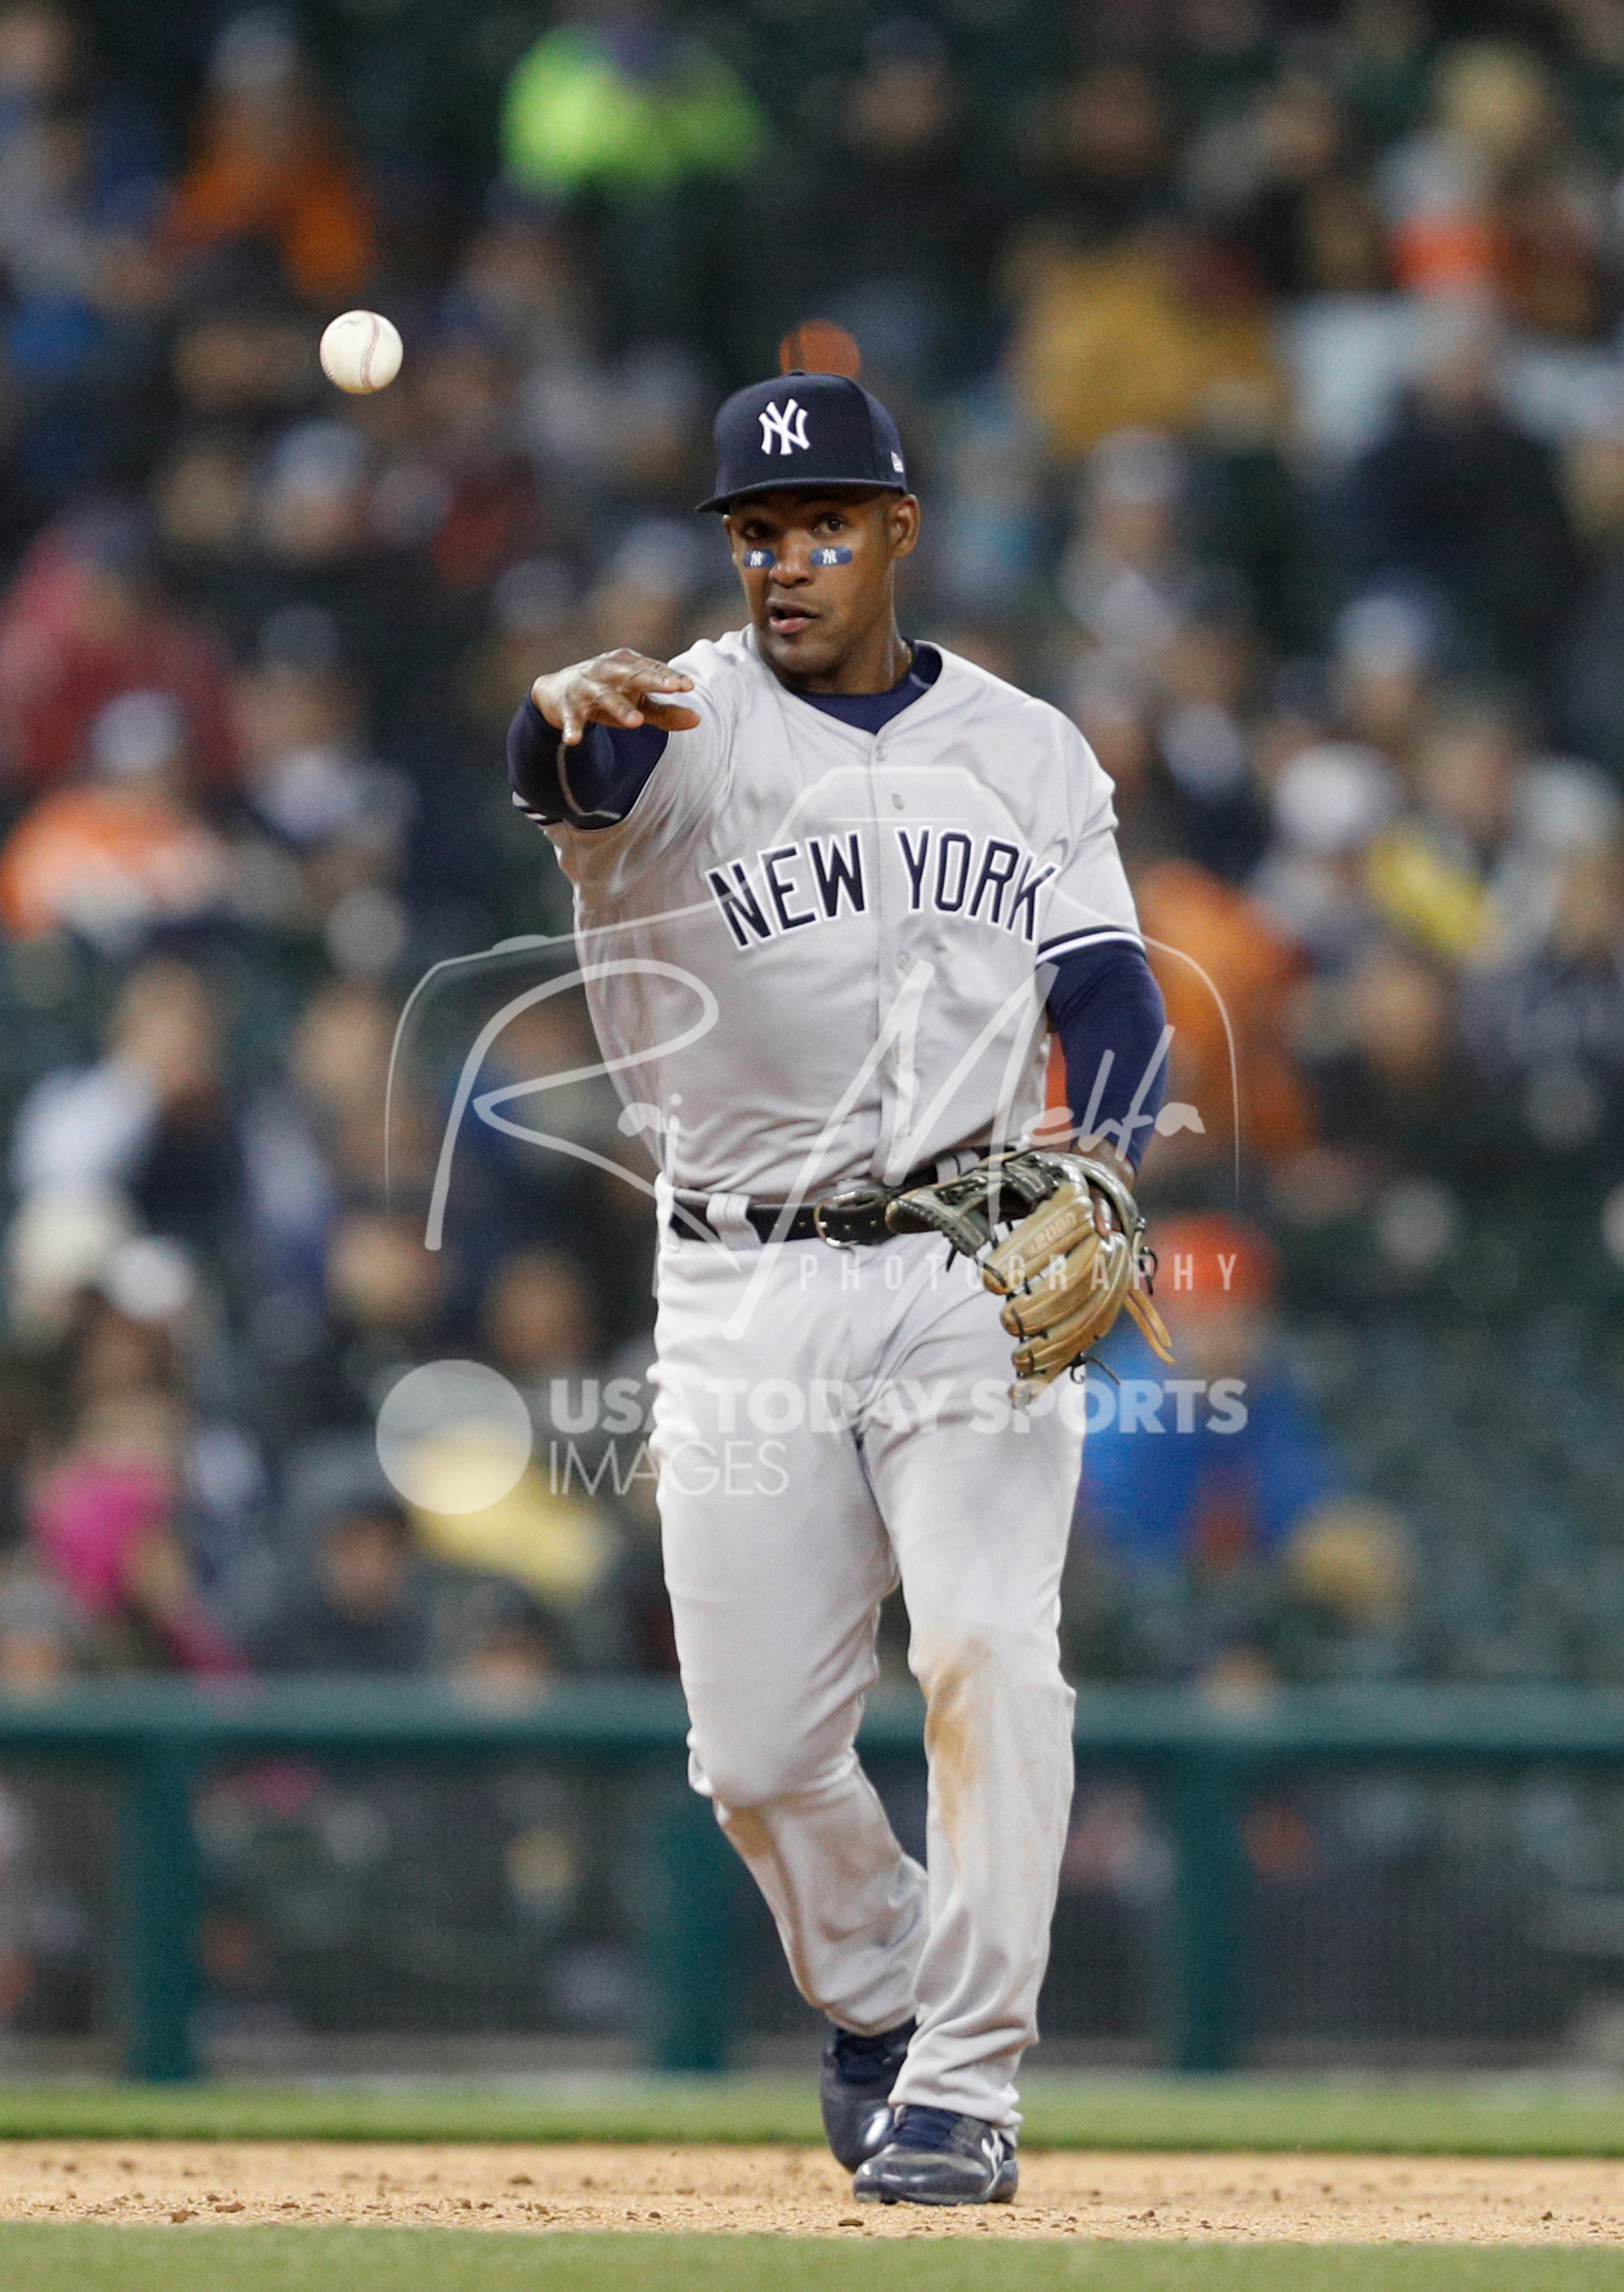 Apr 13, 2018; Detroit, MI, USA; New York Yankees third baseman Miguel Andujar (41) throws the ball to first for an out during the fifth inning against the Detroit Tigers at Comerica Park. Mandatory Credit: Raj Mehta-USA TODAY Sports